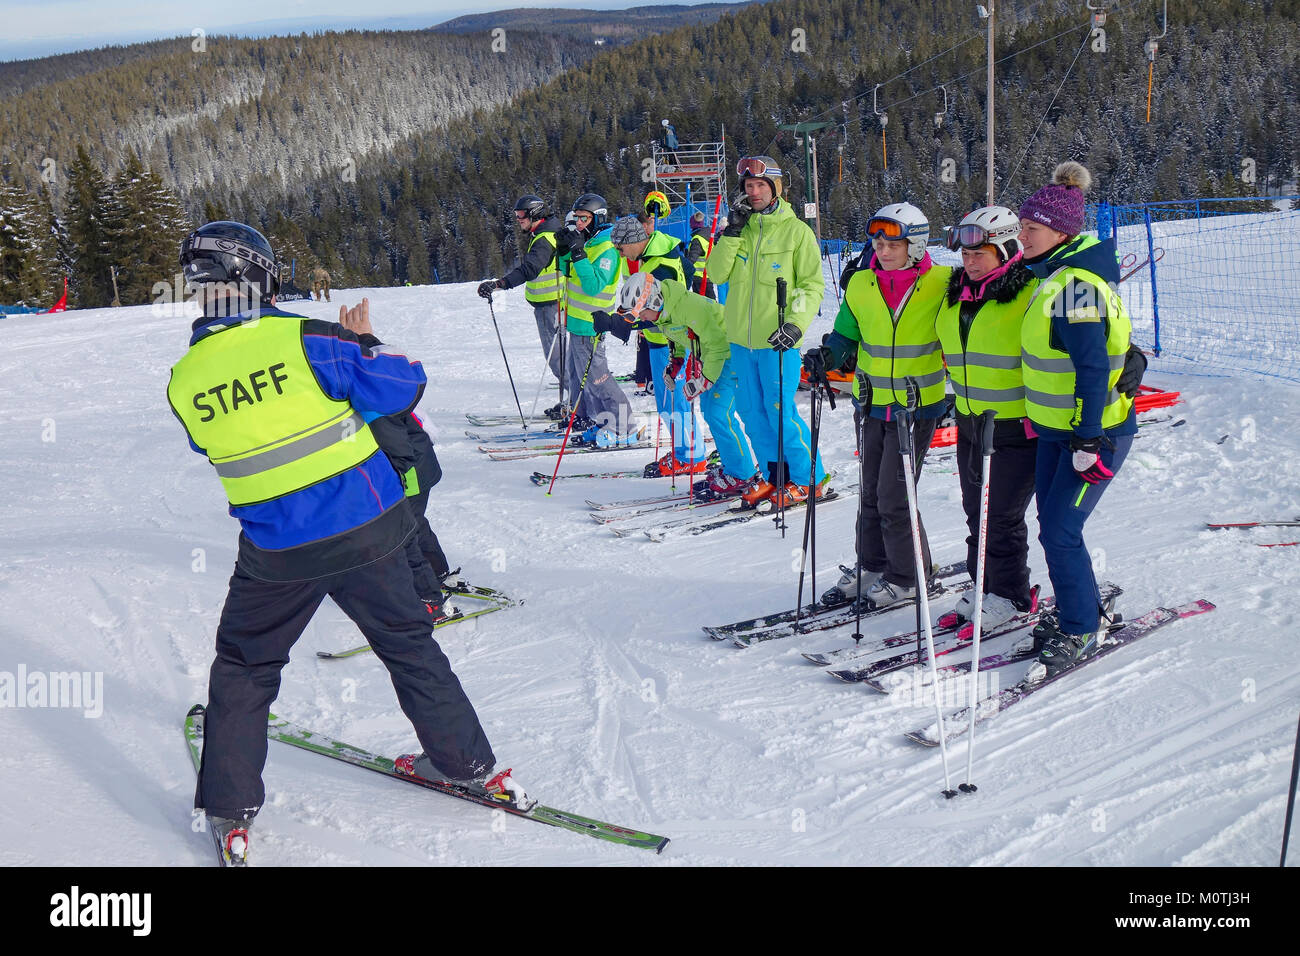 A man takes photo of his colleges, ski resort staff, during active break at work.  Rogla ski resort. Pohorje. Zrece. - Stock Image